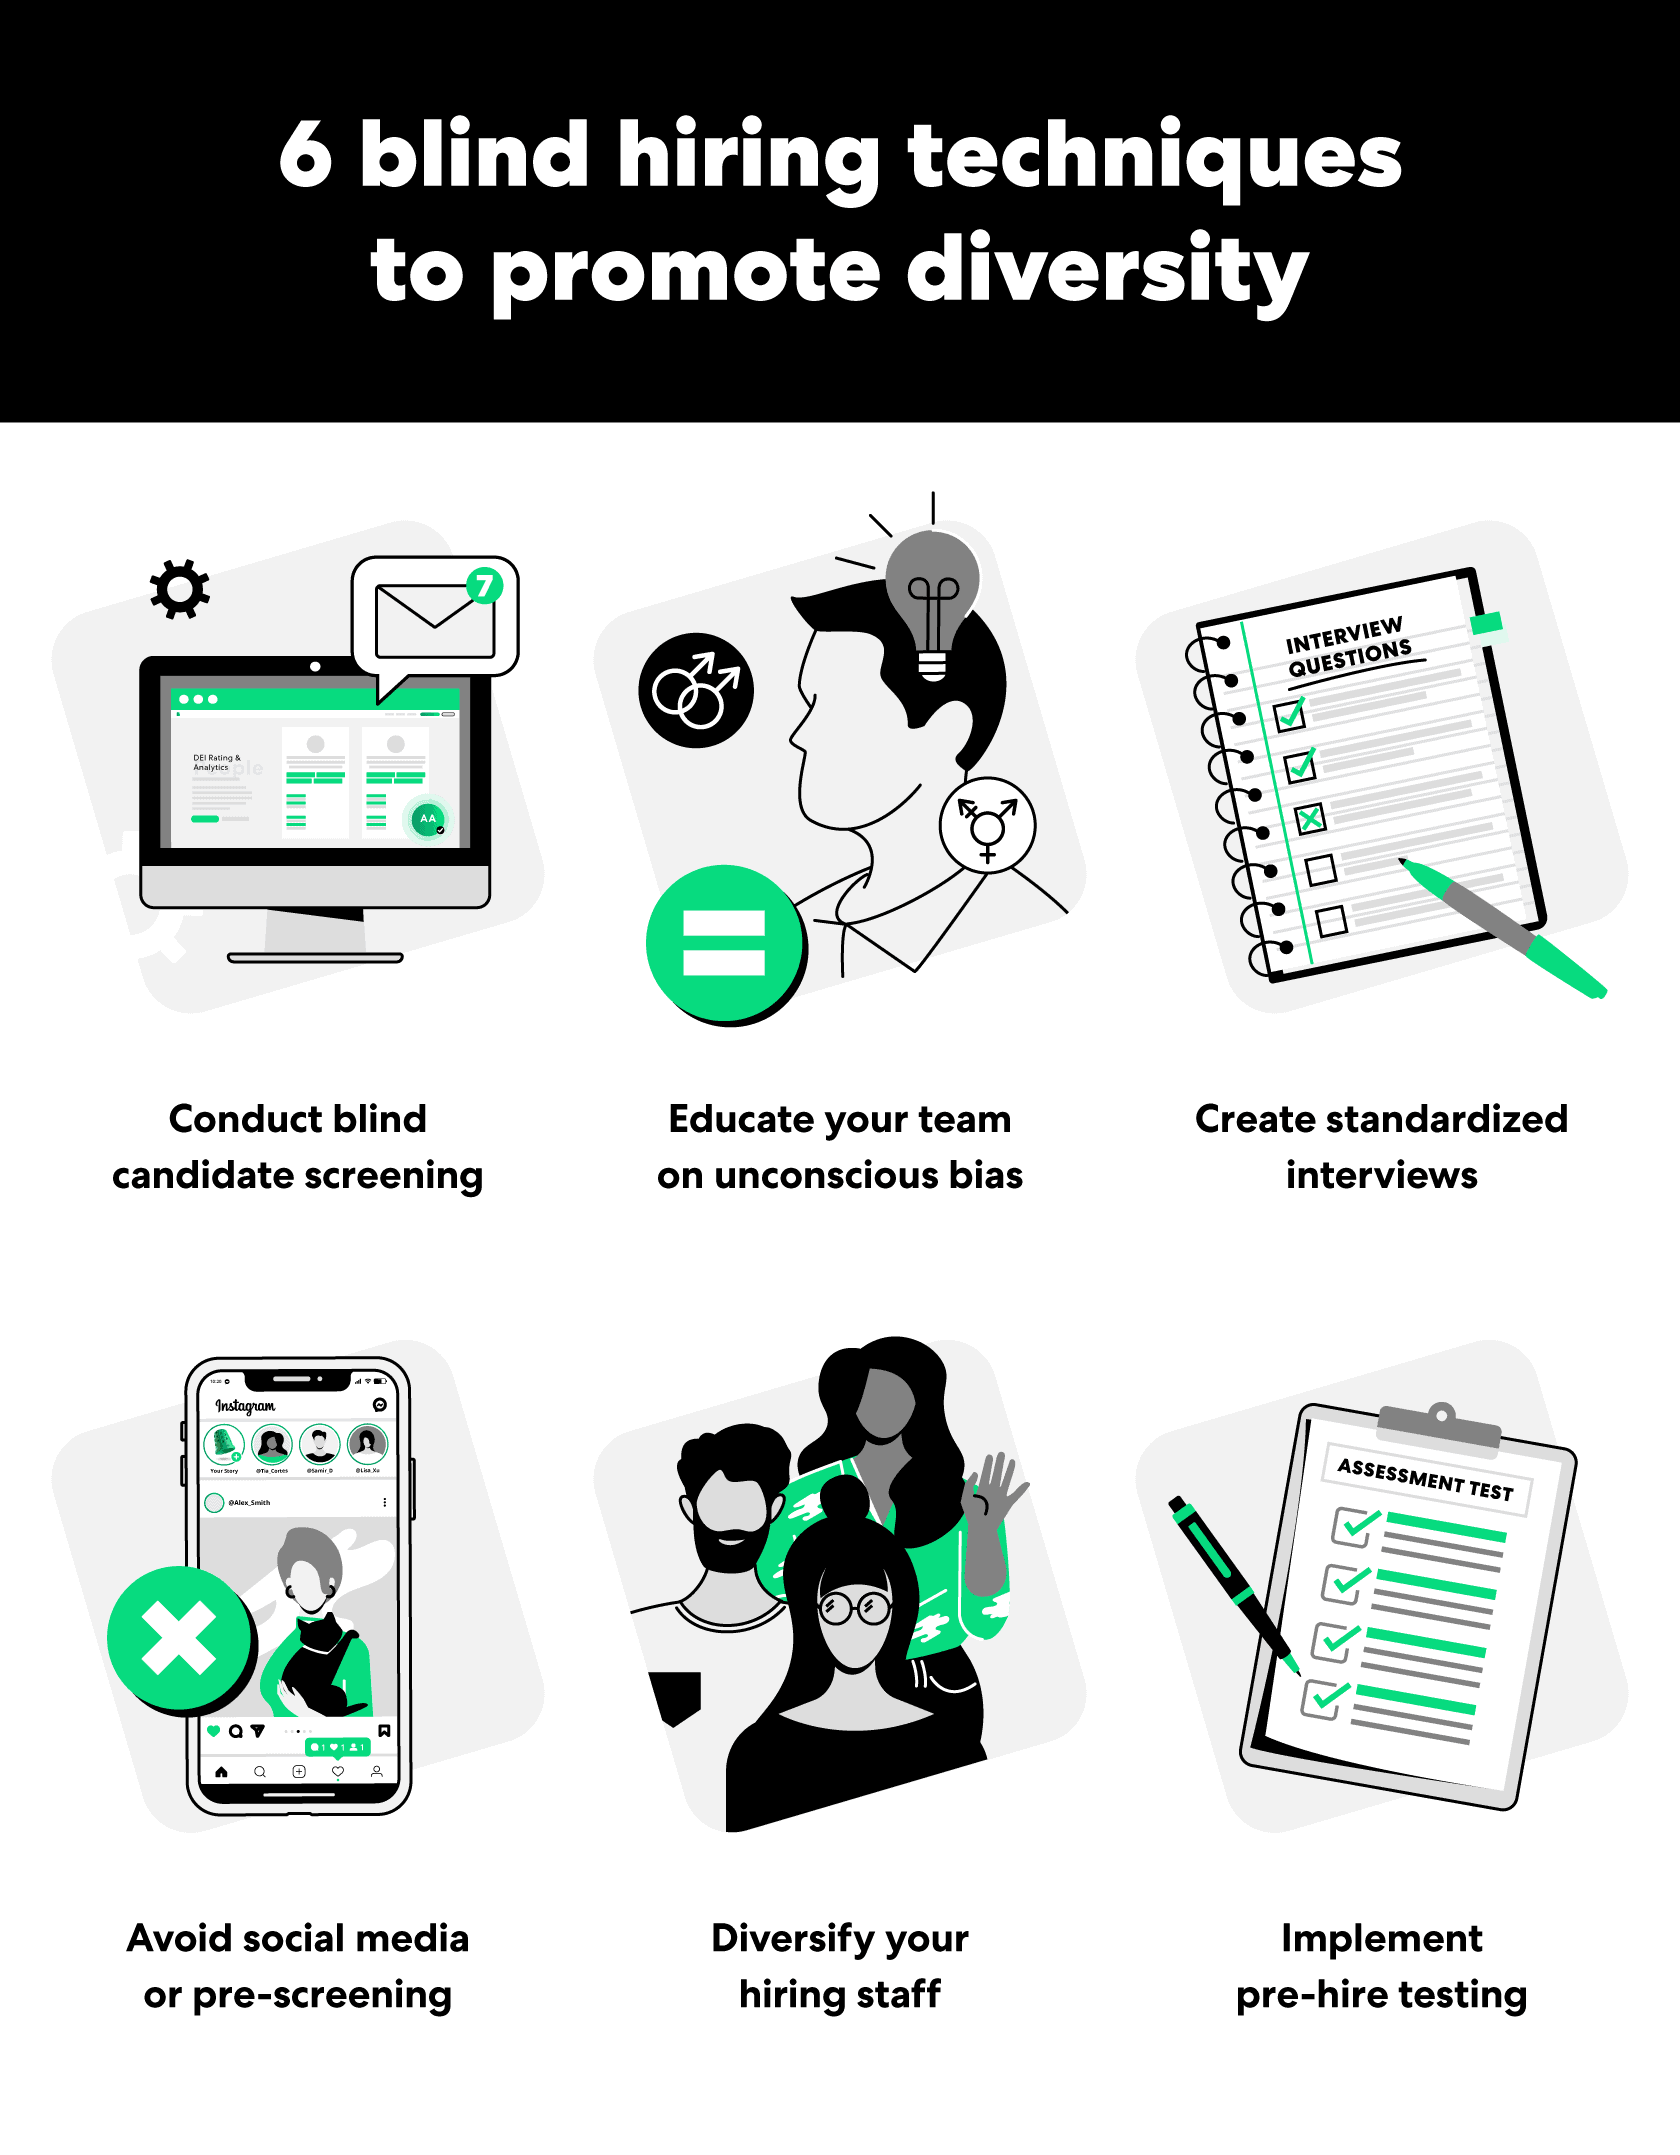 6-blind-hiring-techniques-to-promote-diversity